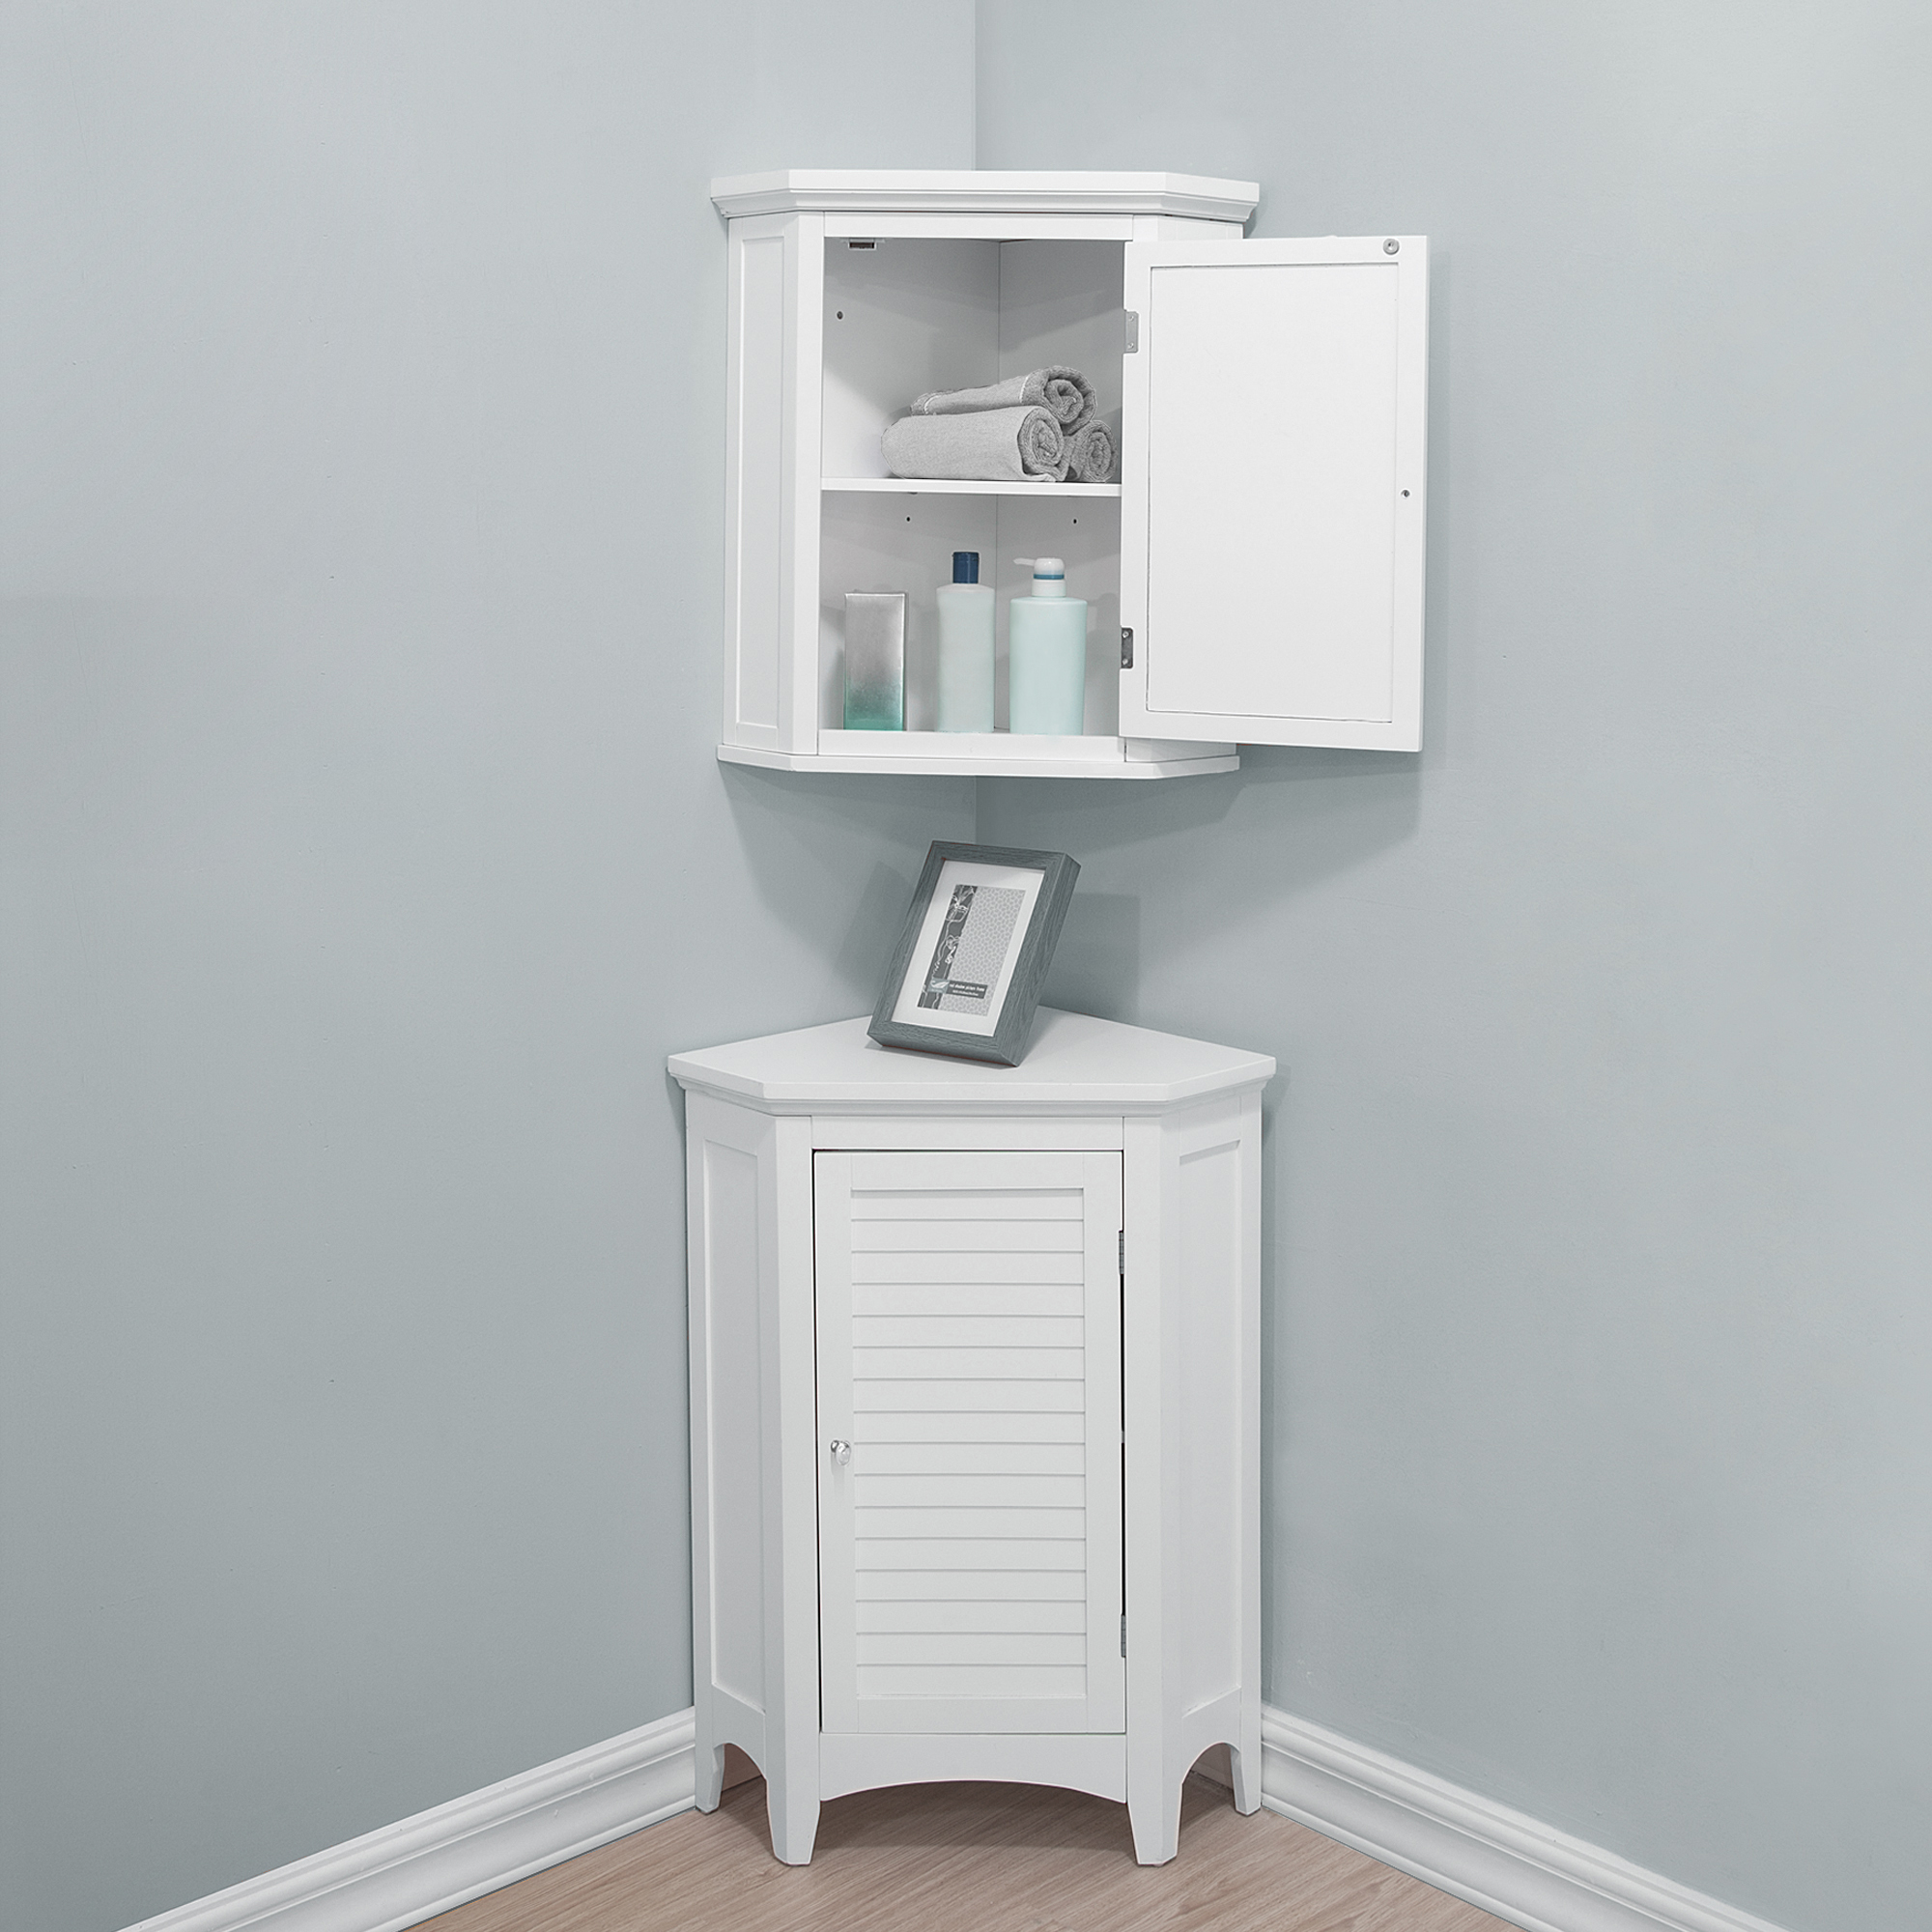 Elegant Home Fashions Bathroom Corner White Wooden Standing Cabinet Elg 586 Teamson Home Ireland